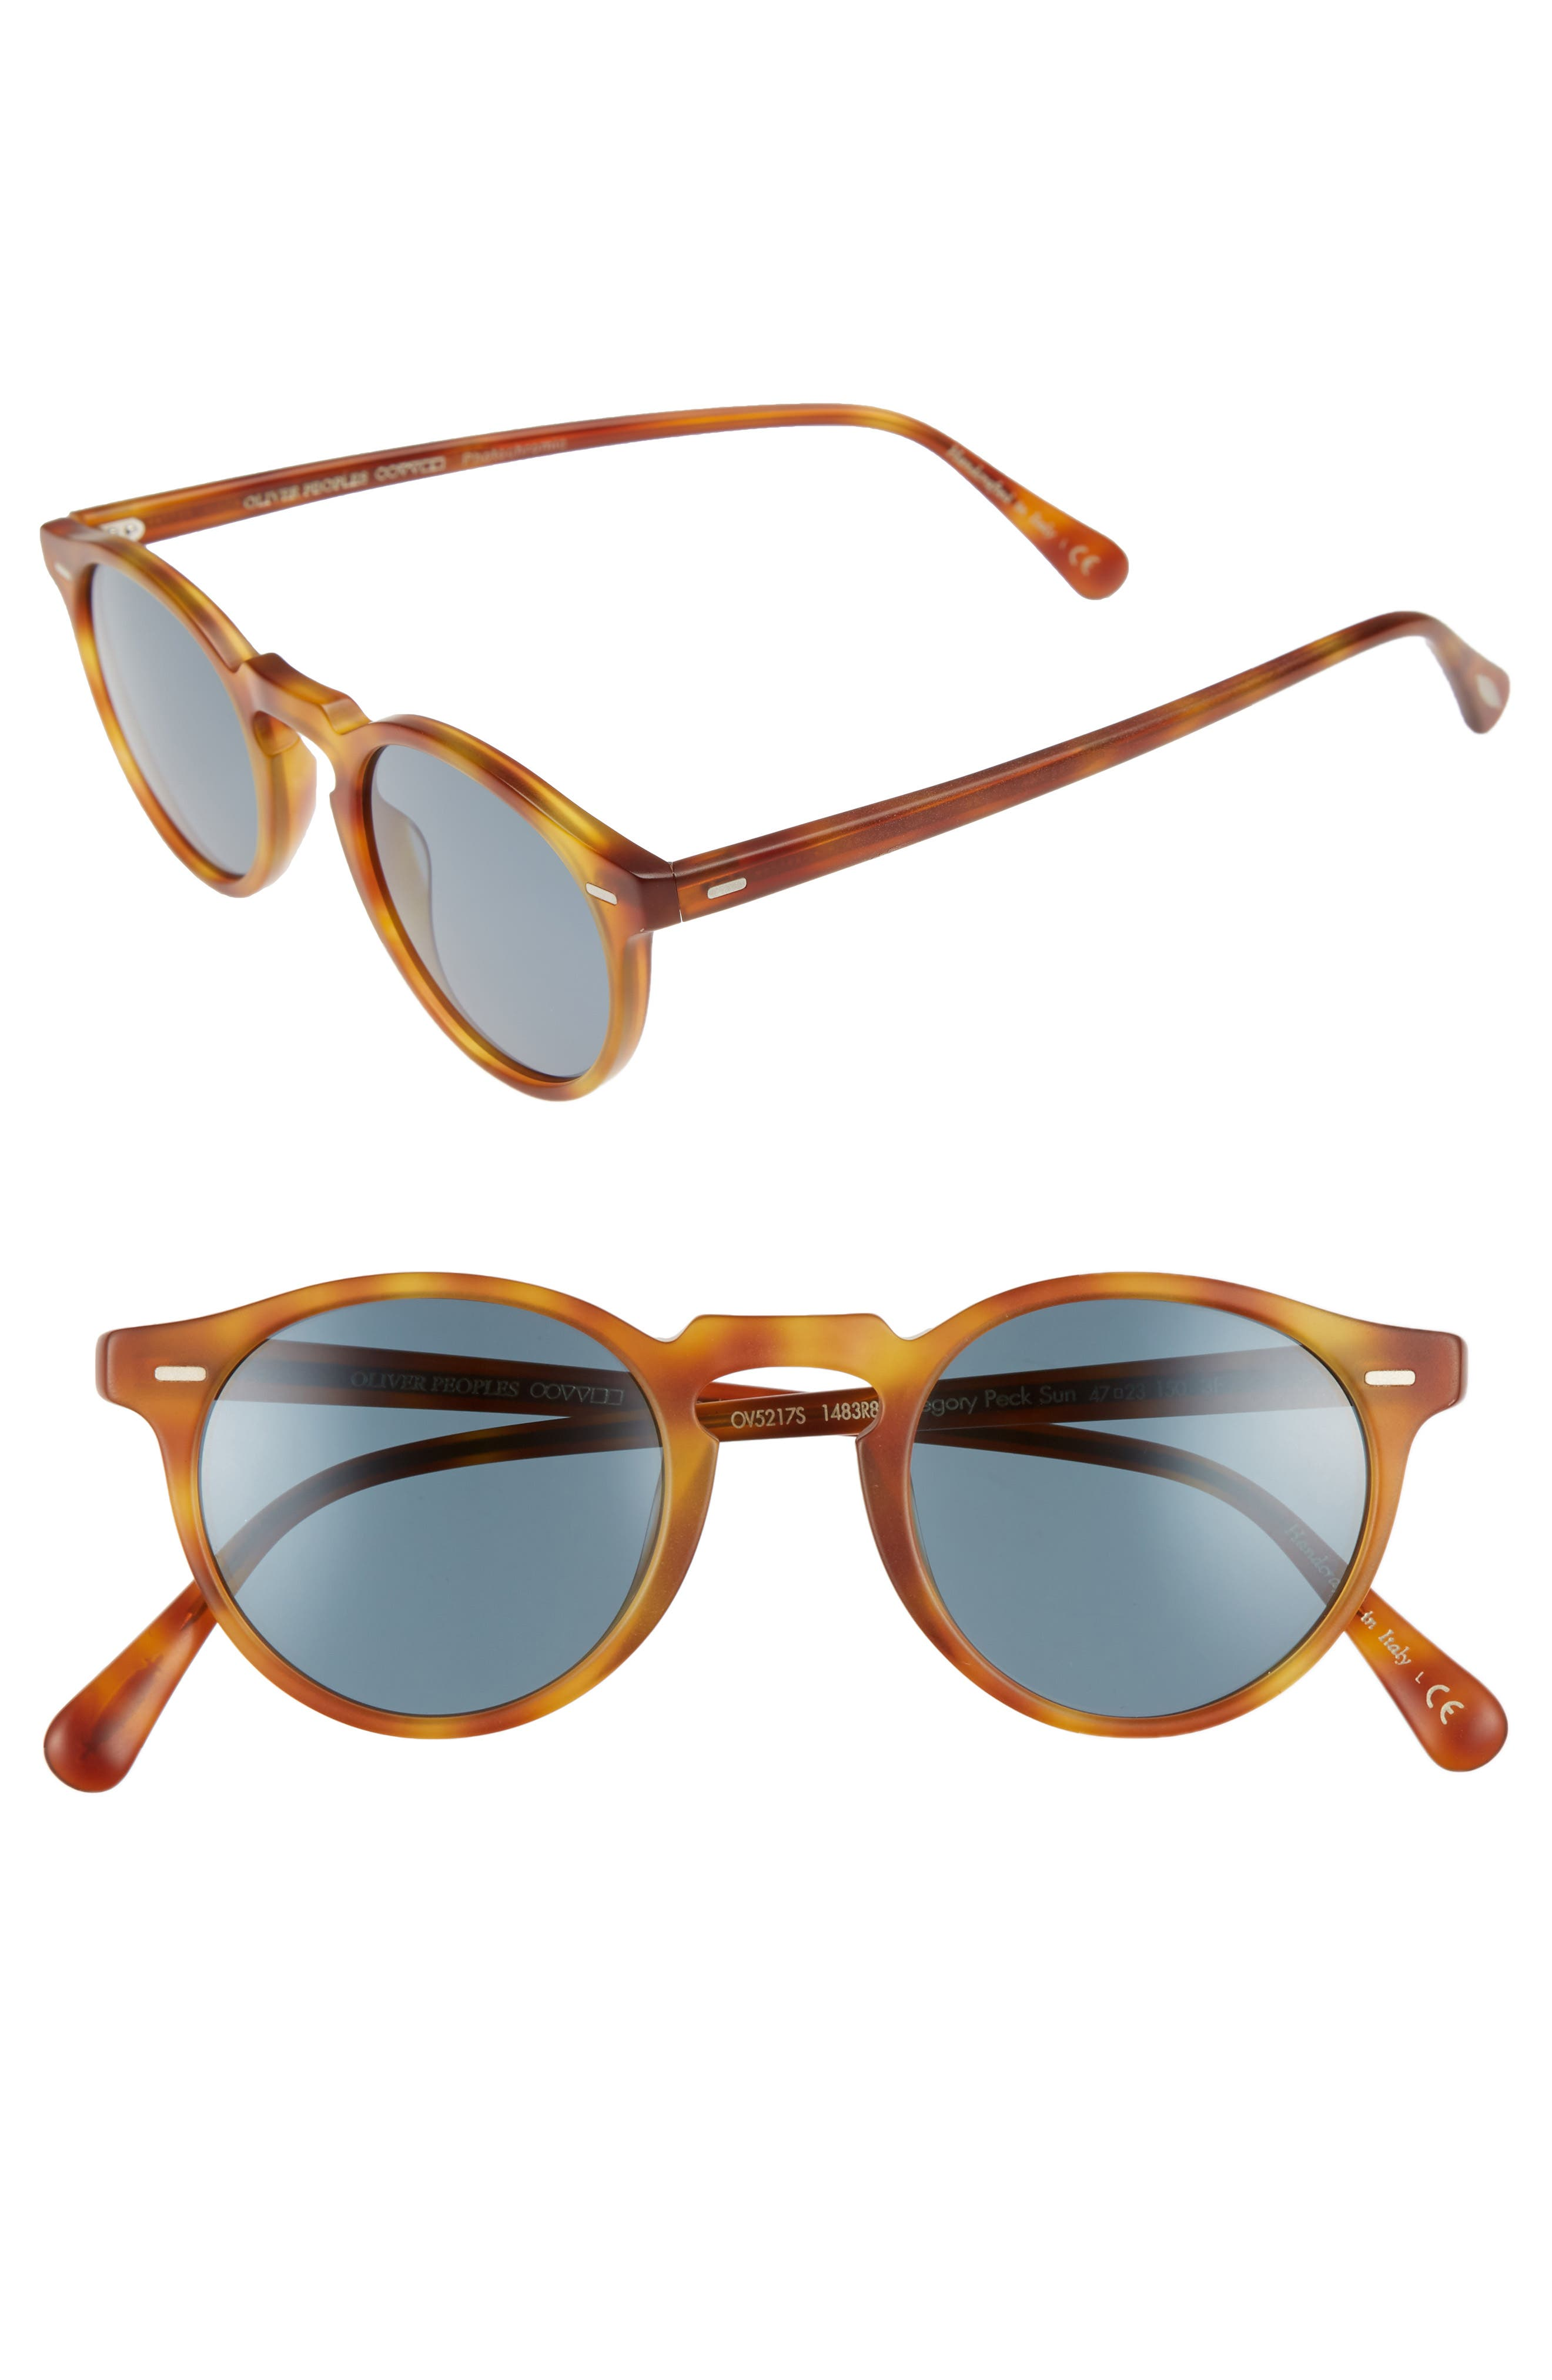 901ac34a9c9b1 oliver peoples sunglass